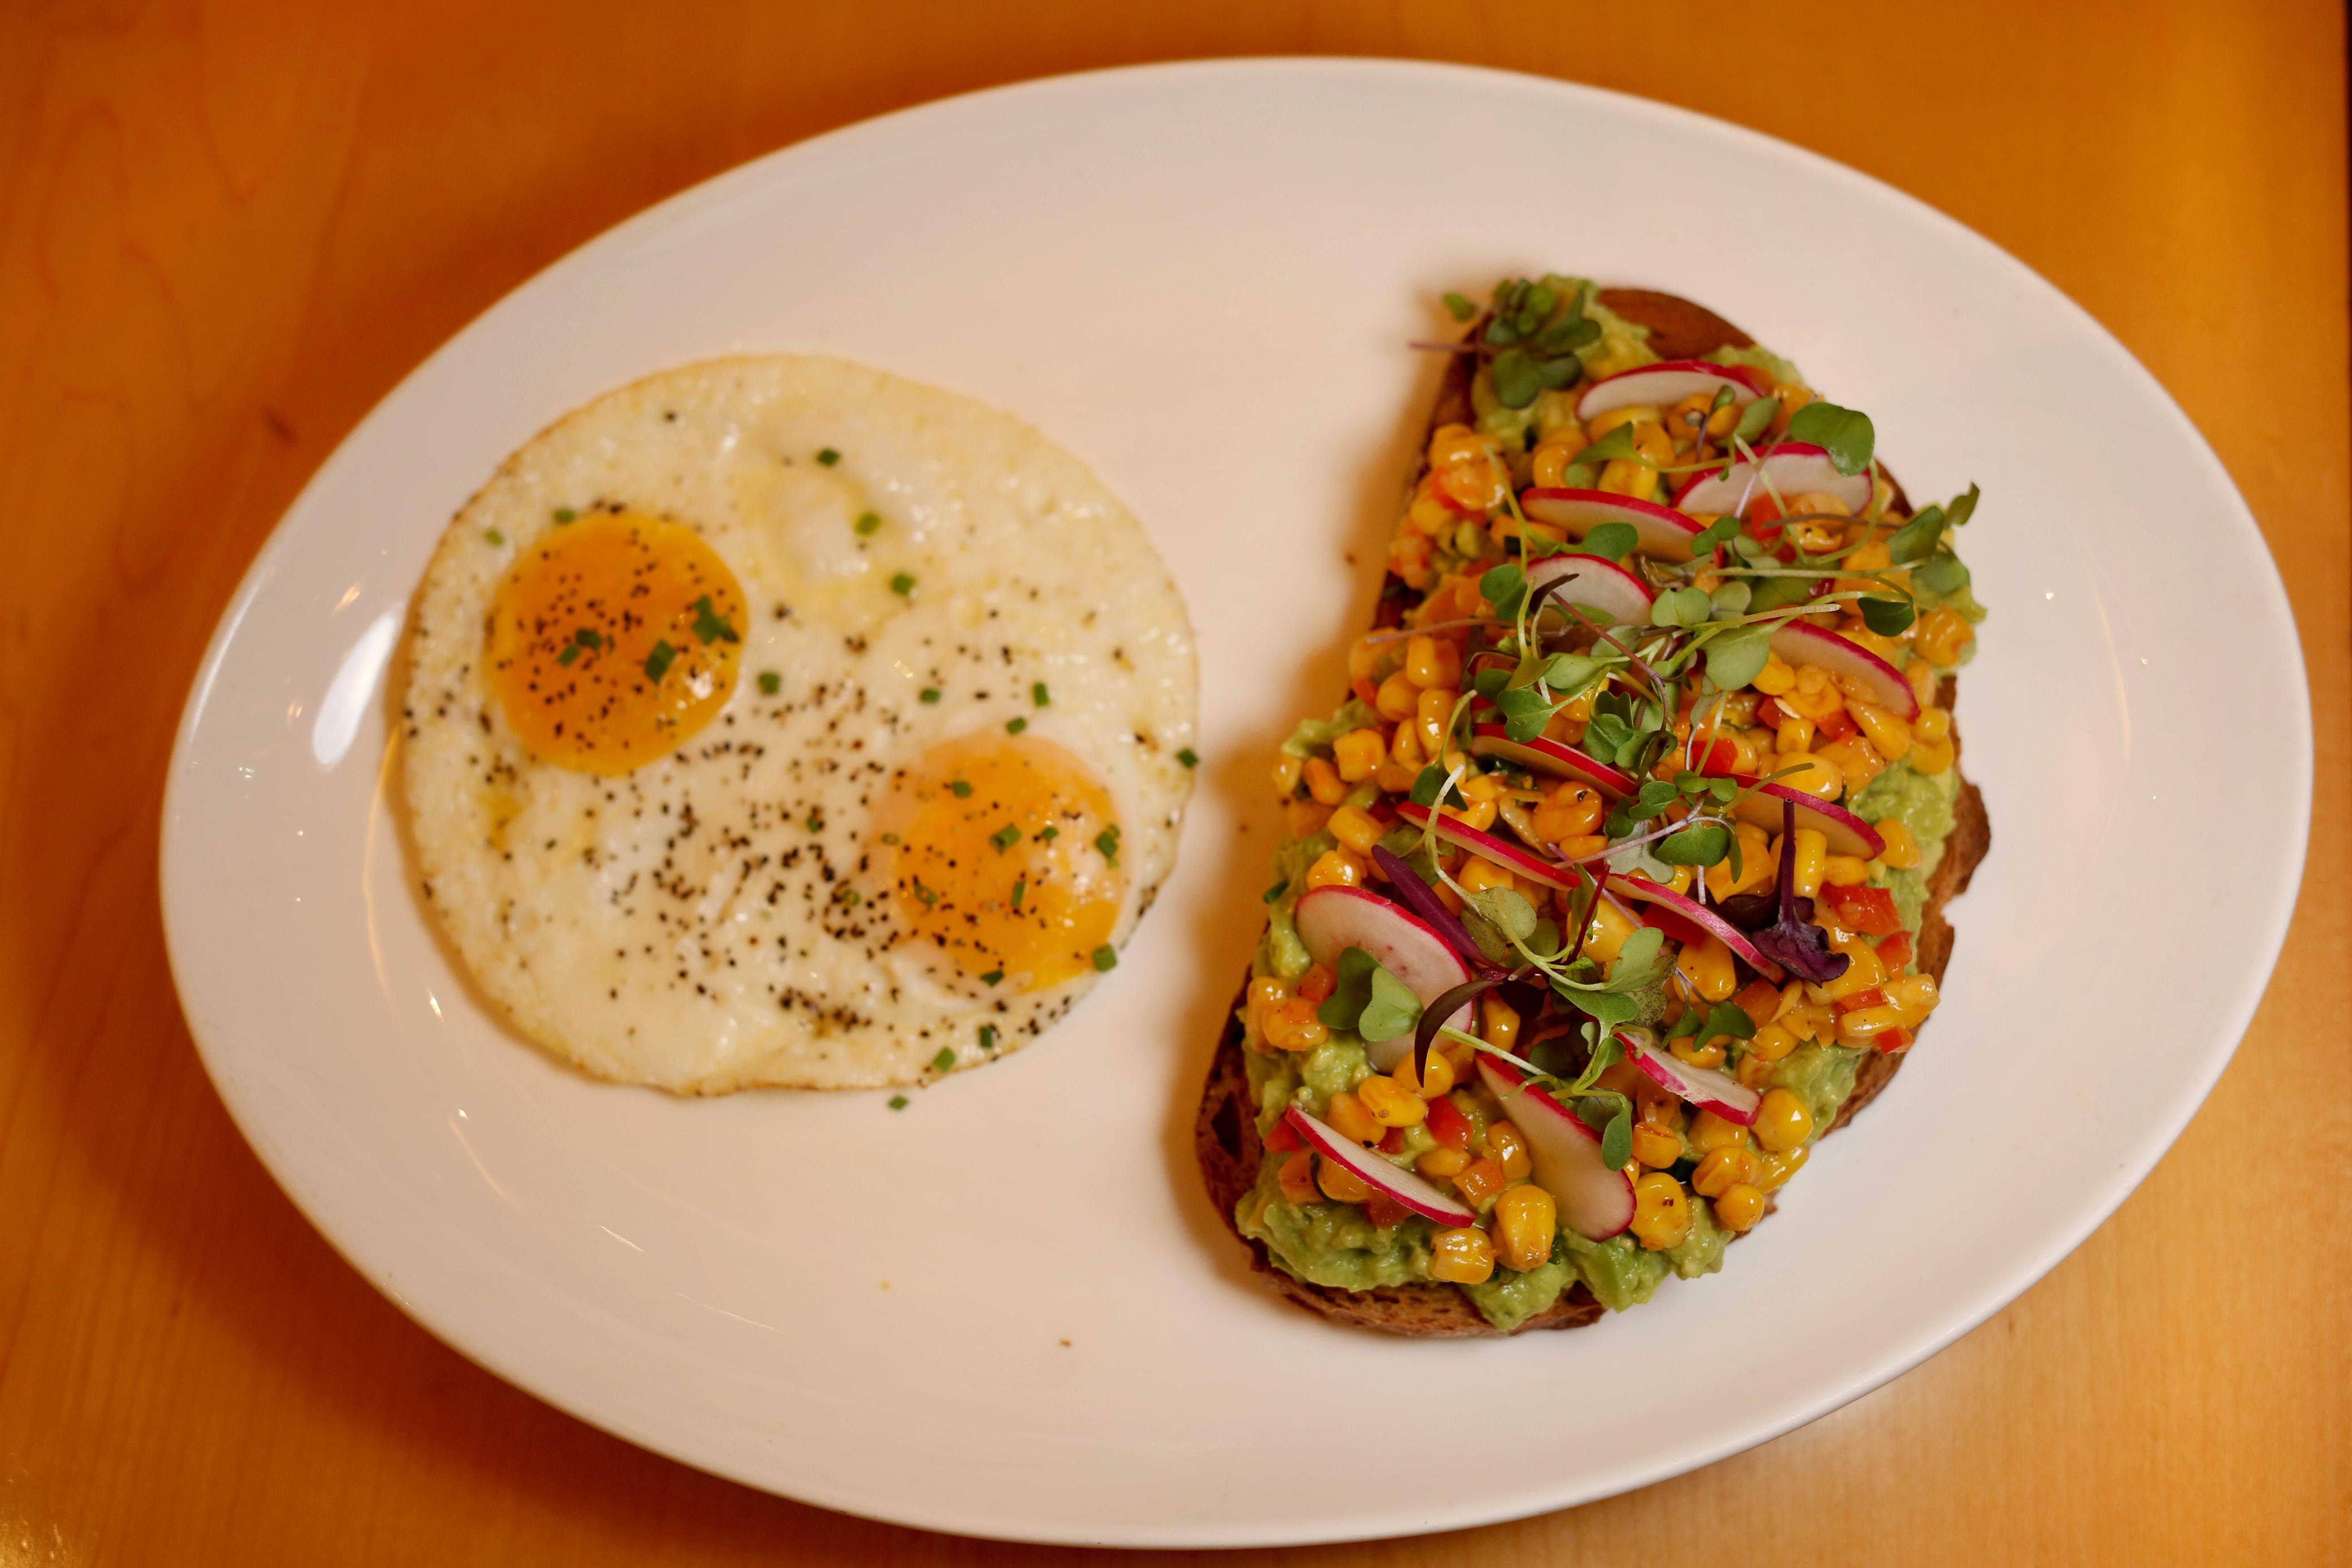 This may be one of the most elaborate versions of avocado toast. It's only available during brunch on weekends, but it comes with corn, micro greens, radish and red bell pepper on 7-grain toast. Although the price is listed at $14, you can order a full brunch meal for just a few extra bucks and pick the avocado toast option. Paired with their $15 bottomless mimosas and bellinis, it's a substantial brunch option. (Amanda Andrade-Rhoades/DC Refined)